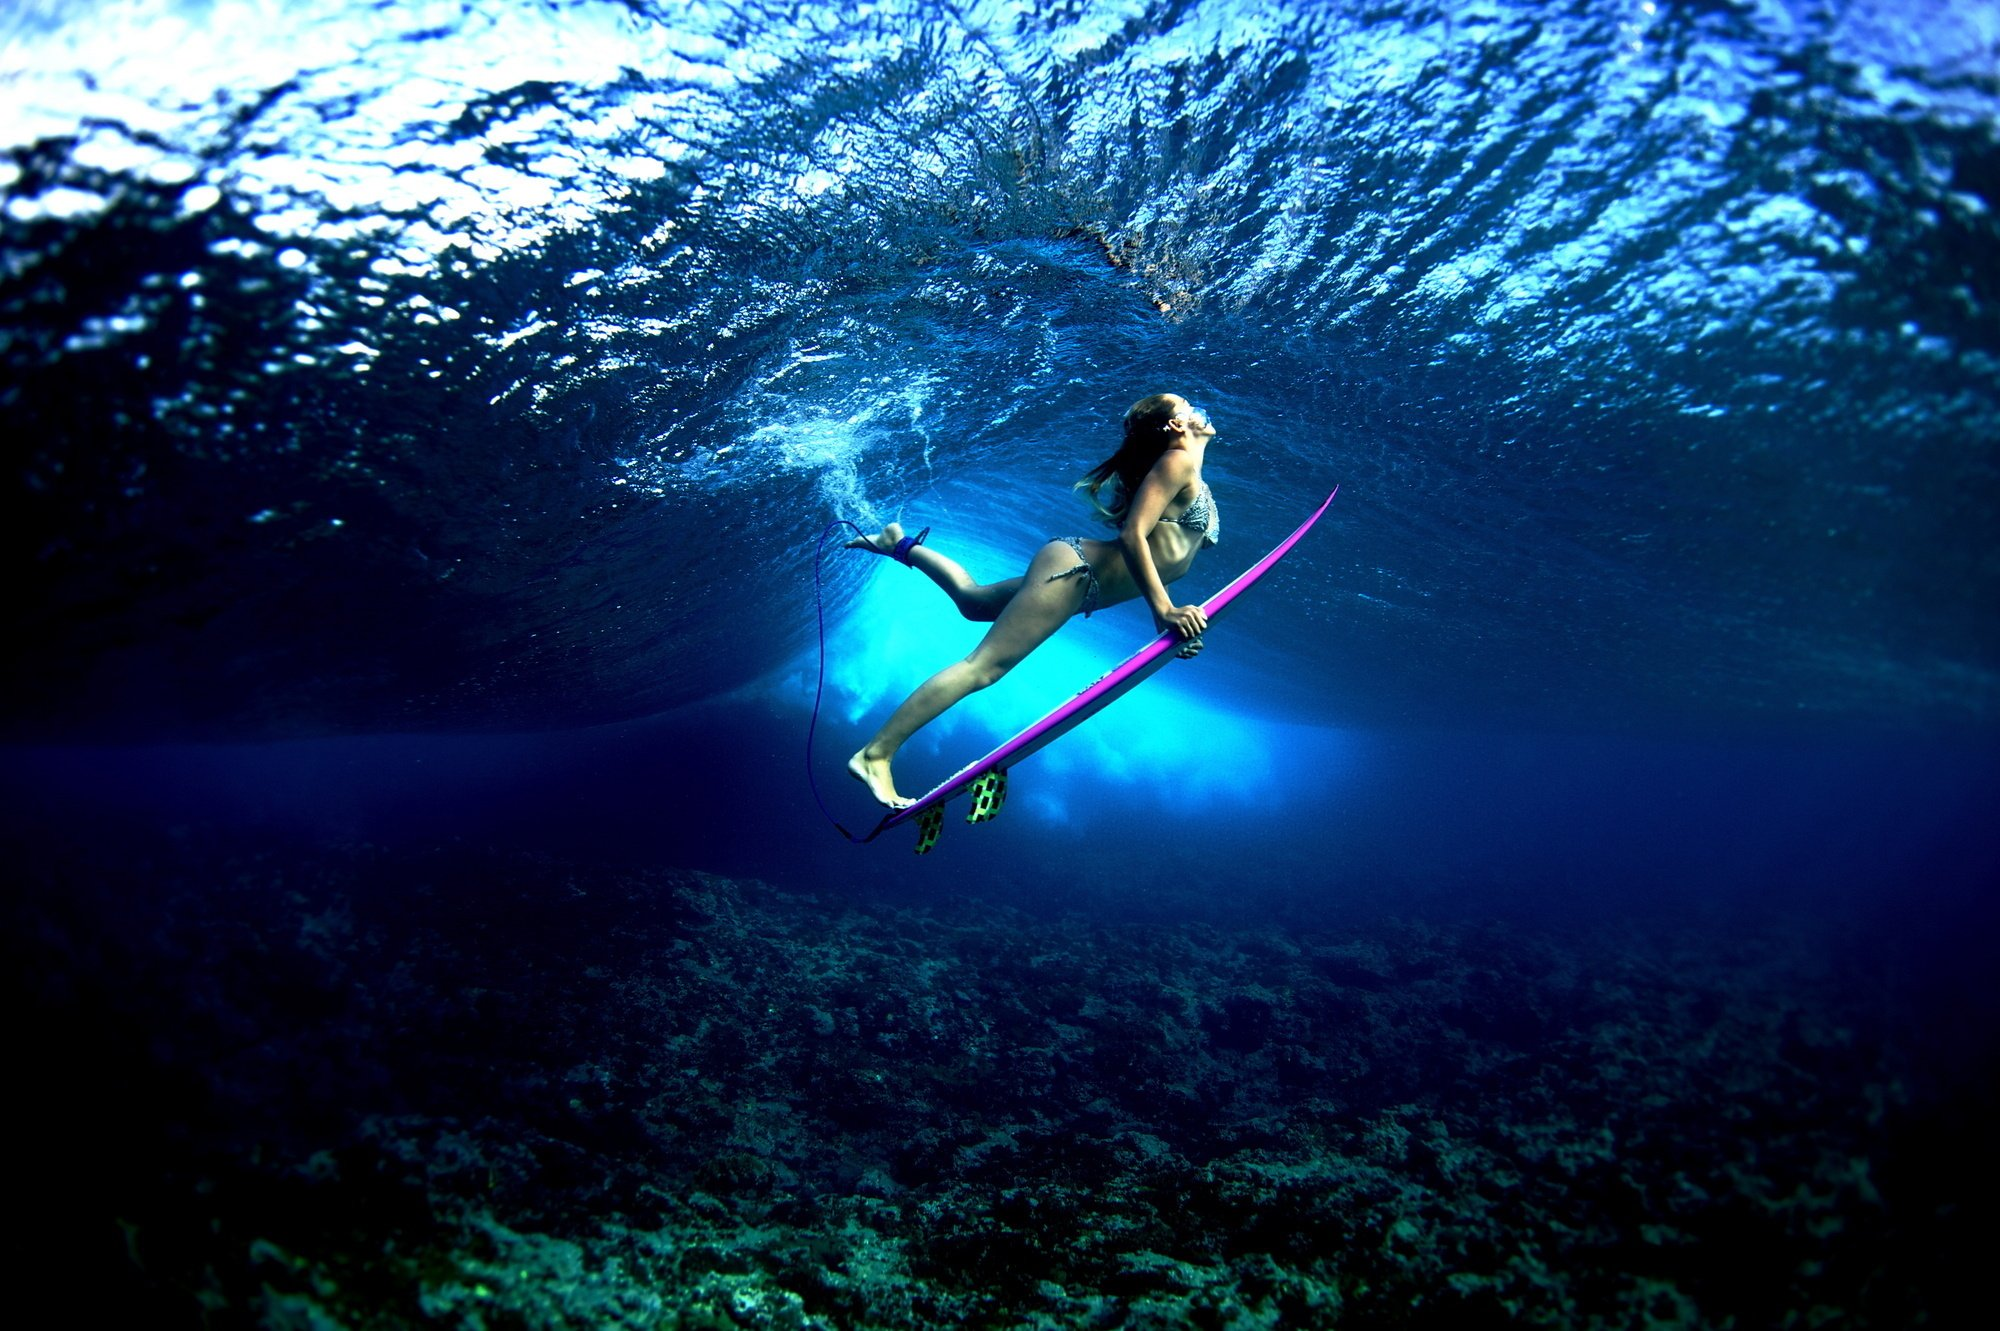 Board ocean girl surf surfing bikini sexy babe underwater wallpaper 2000x1331